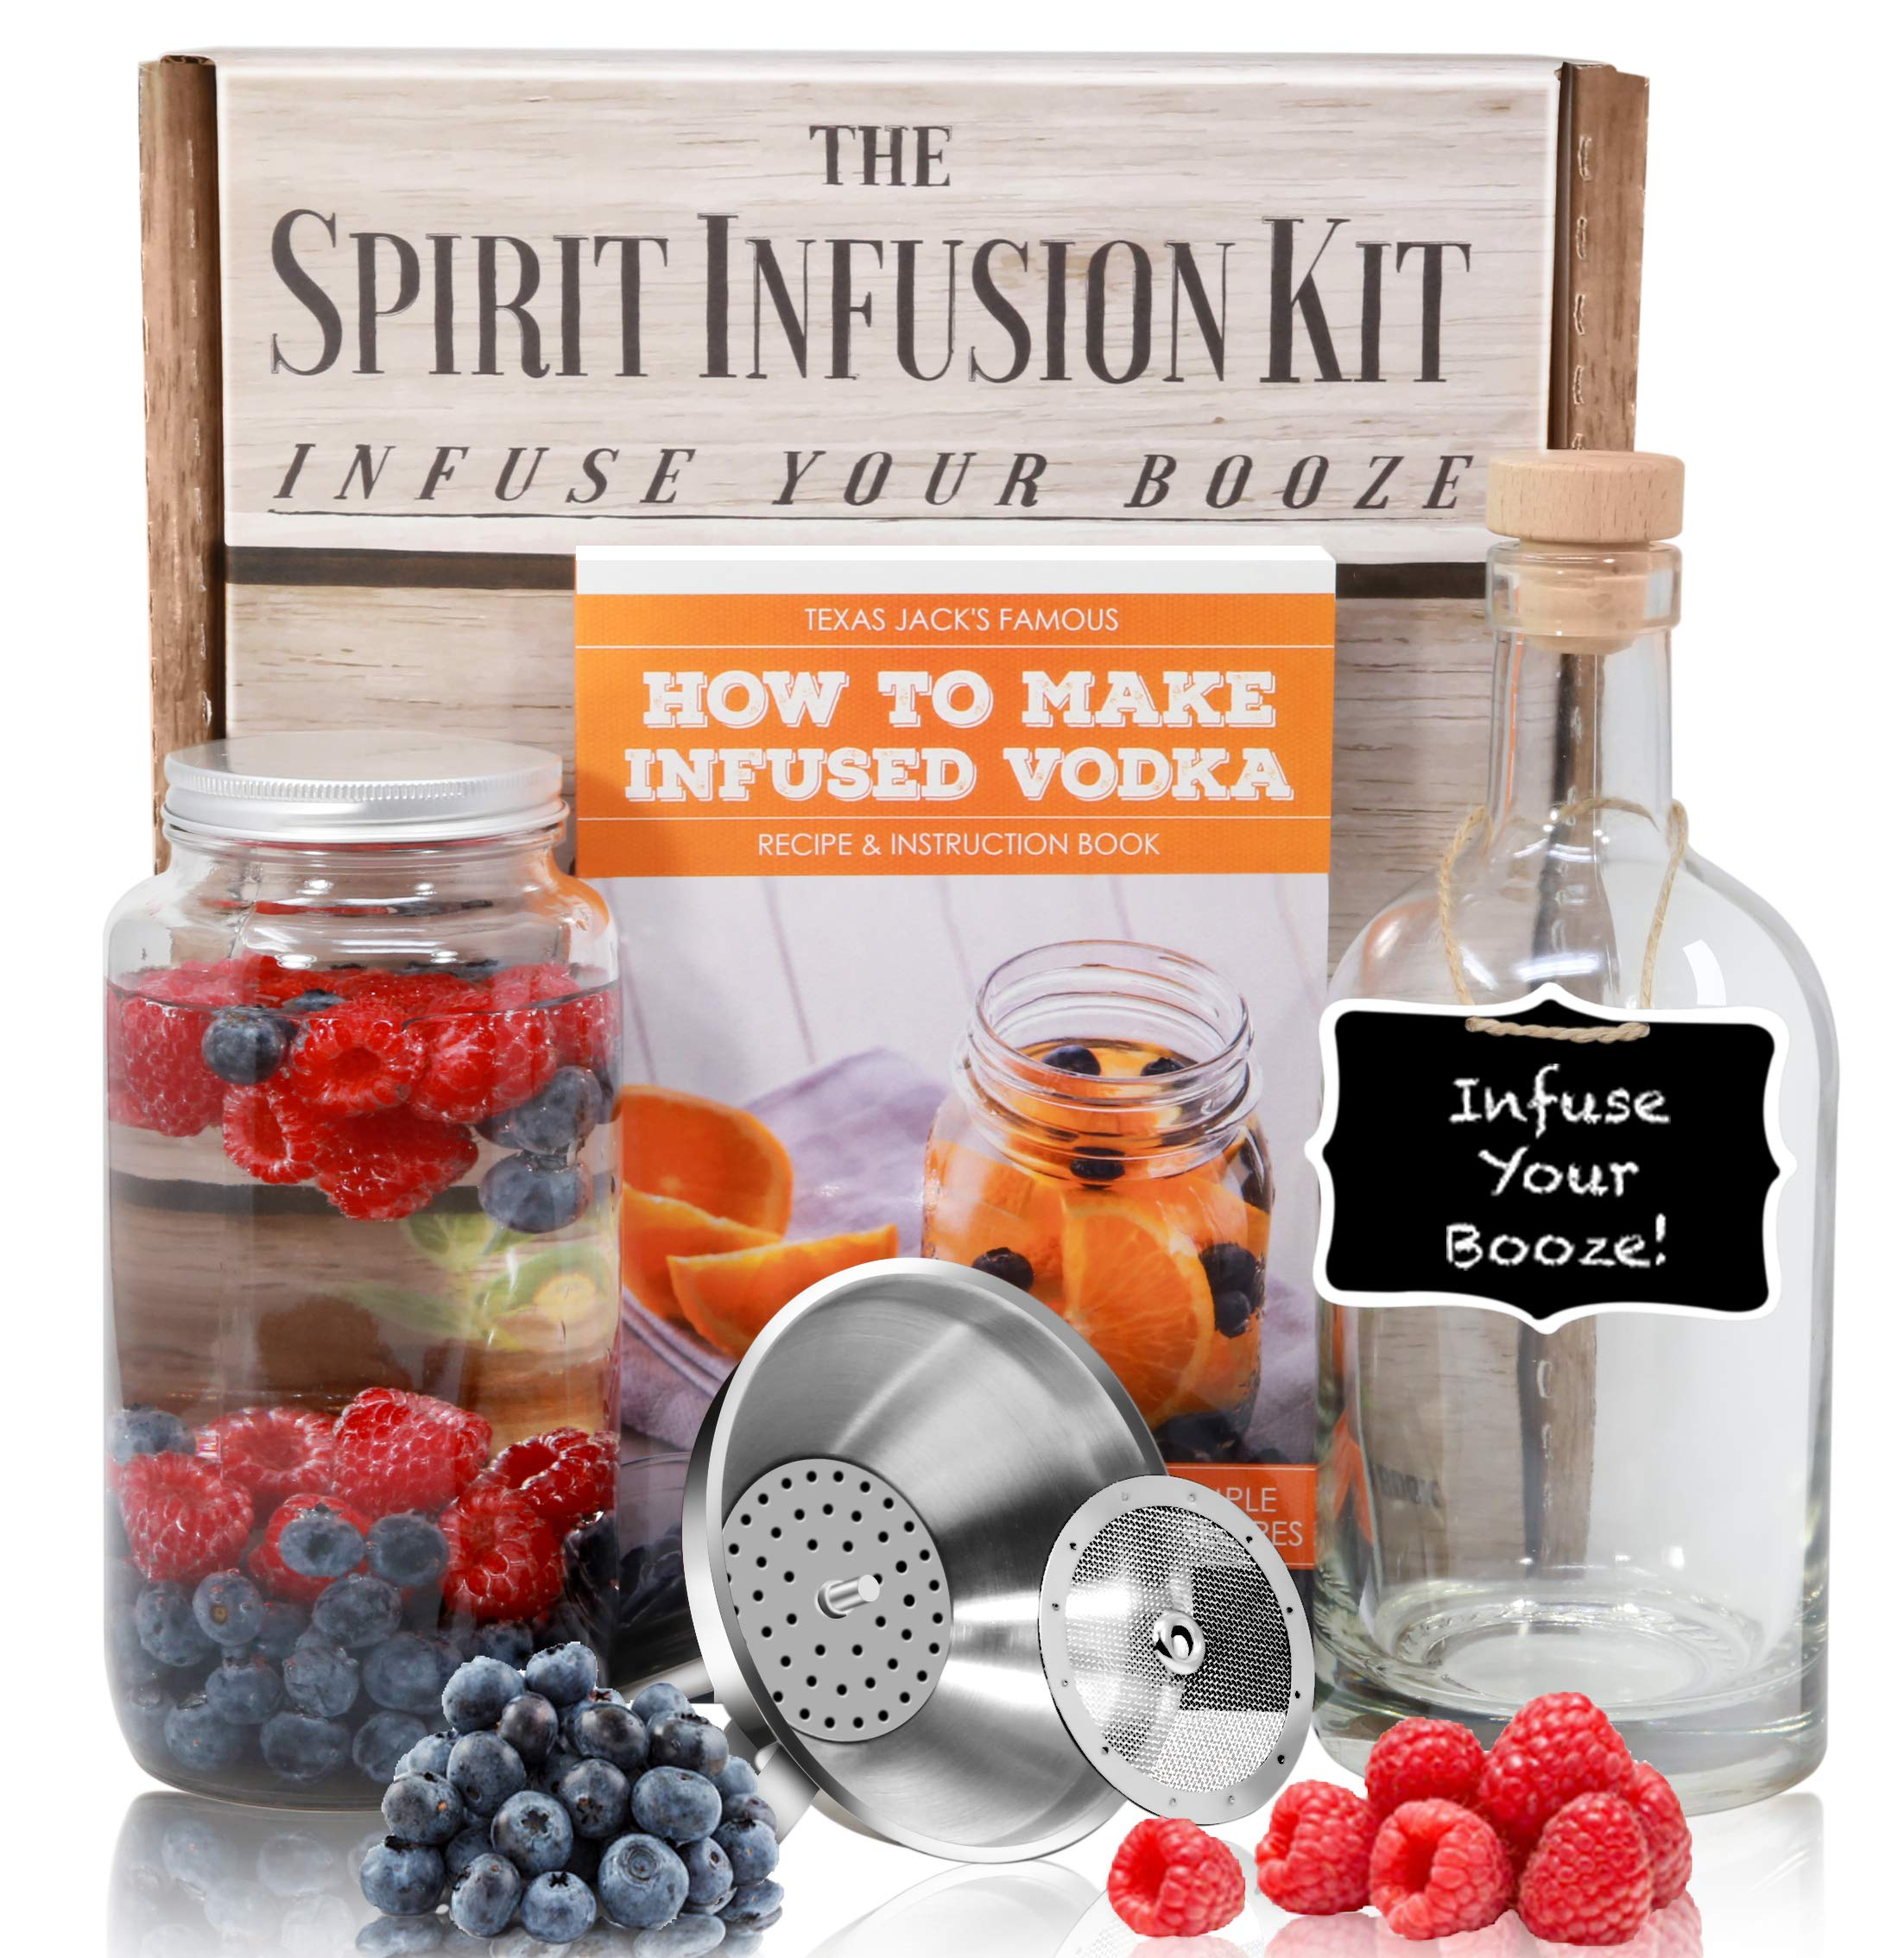 The SPIRIT INFUSION KIT - Infuse Your Booze! 70+ Homemade Flavored Vodka Recipes. Become an Infused Alcohol Cocktail Mixologist using the 110pg Recipe and Instruction Book. Great Gift & Party Hit! by Craft Connections Co. (Image #1)